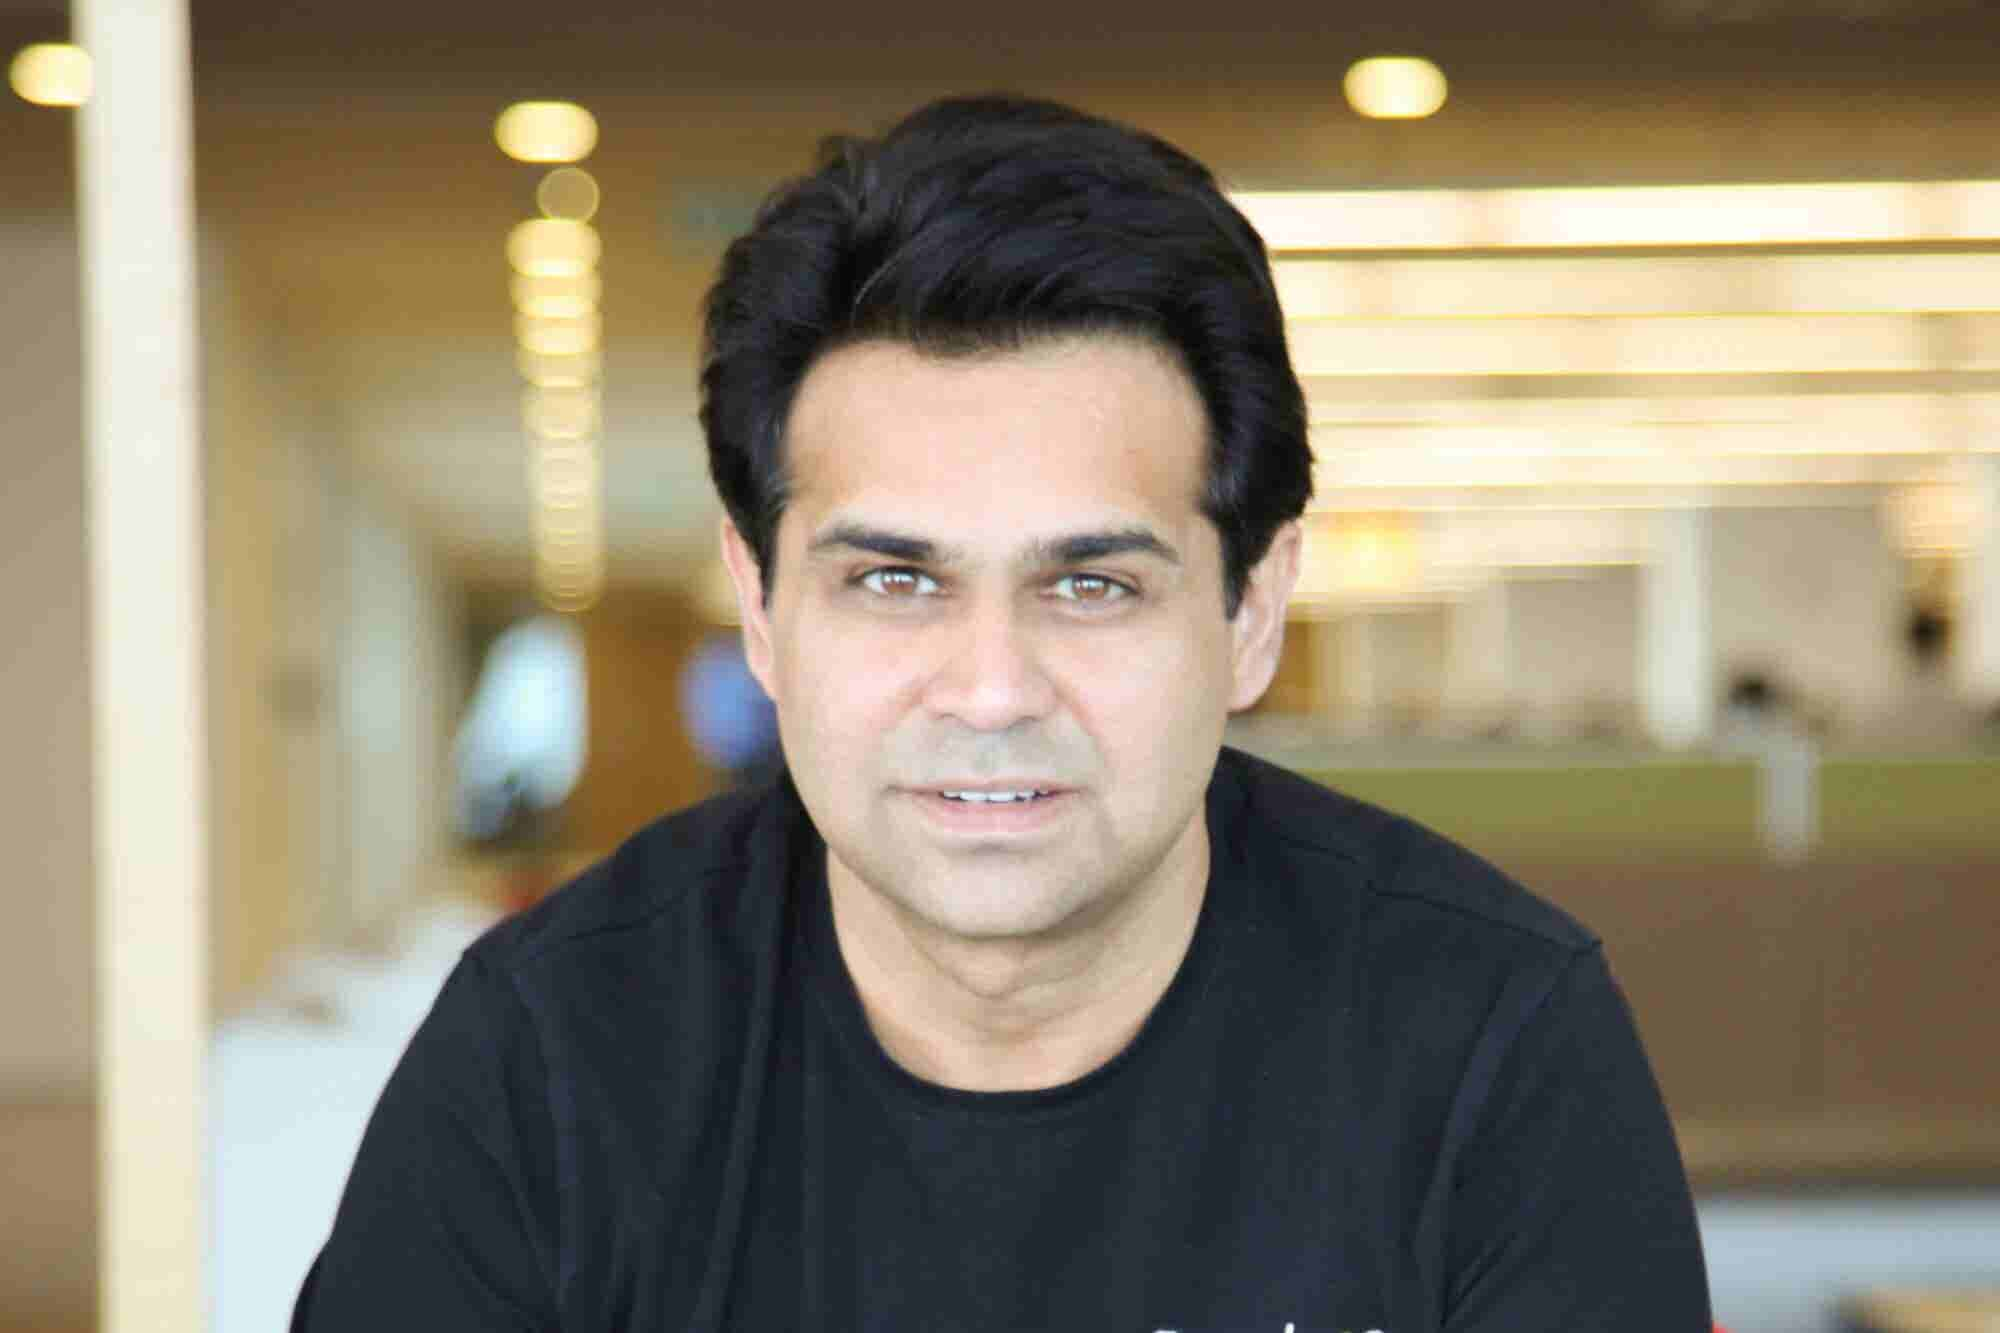 New York-based Techpreneur Shares Why India May Lead the Digital Disruption